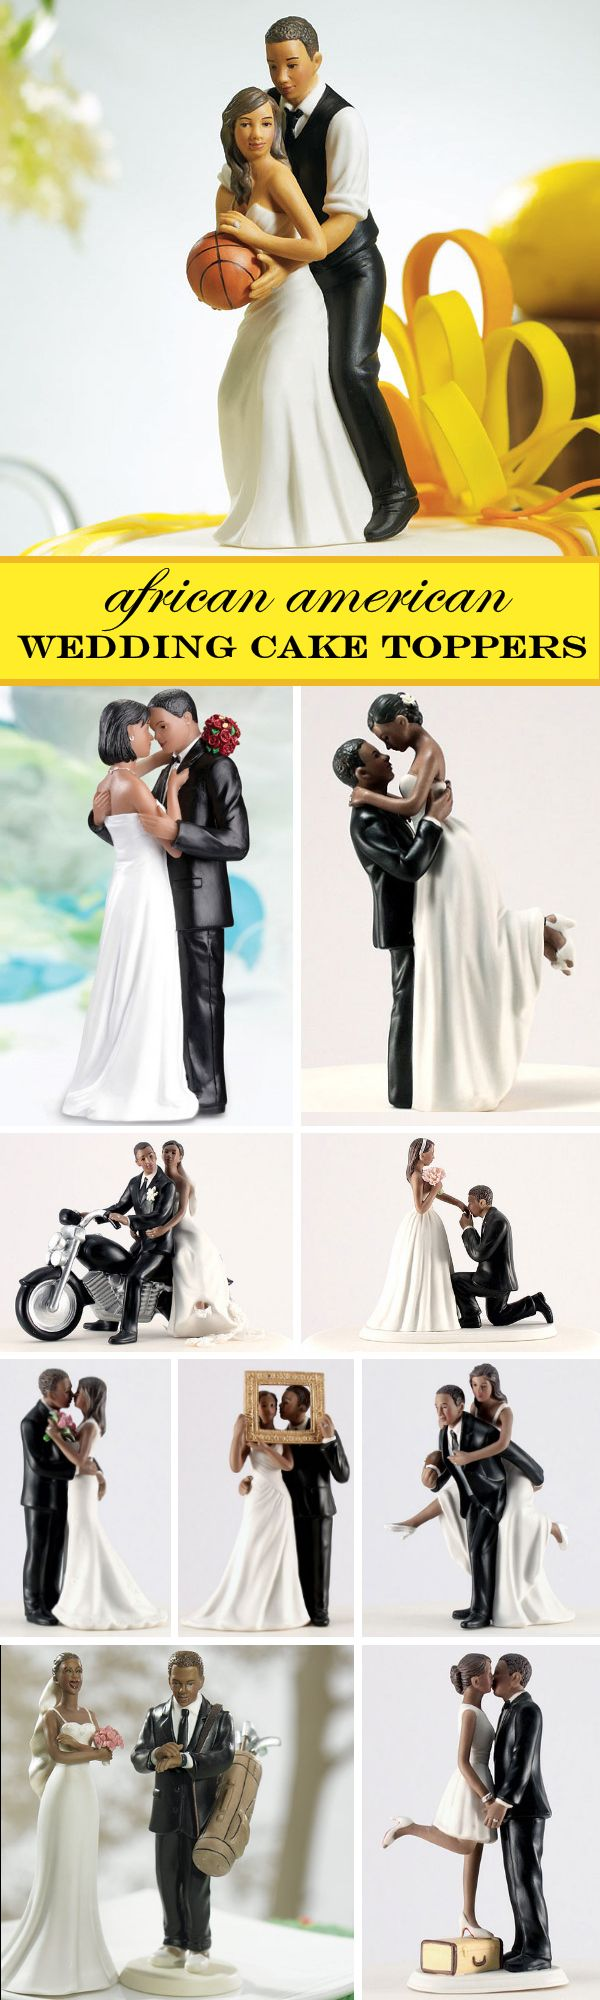 Check out these 10 NEW African American Wedding Cake Toppers....romantic, funny, sports-themed and more.